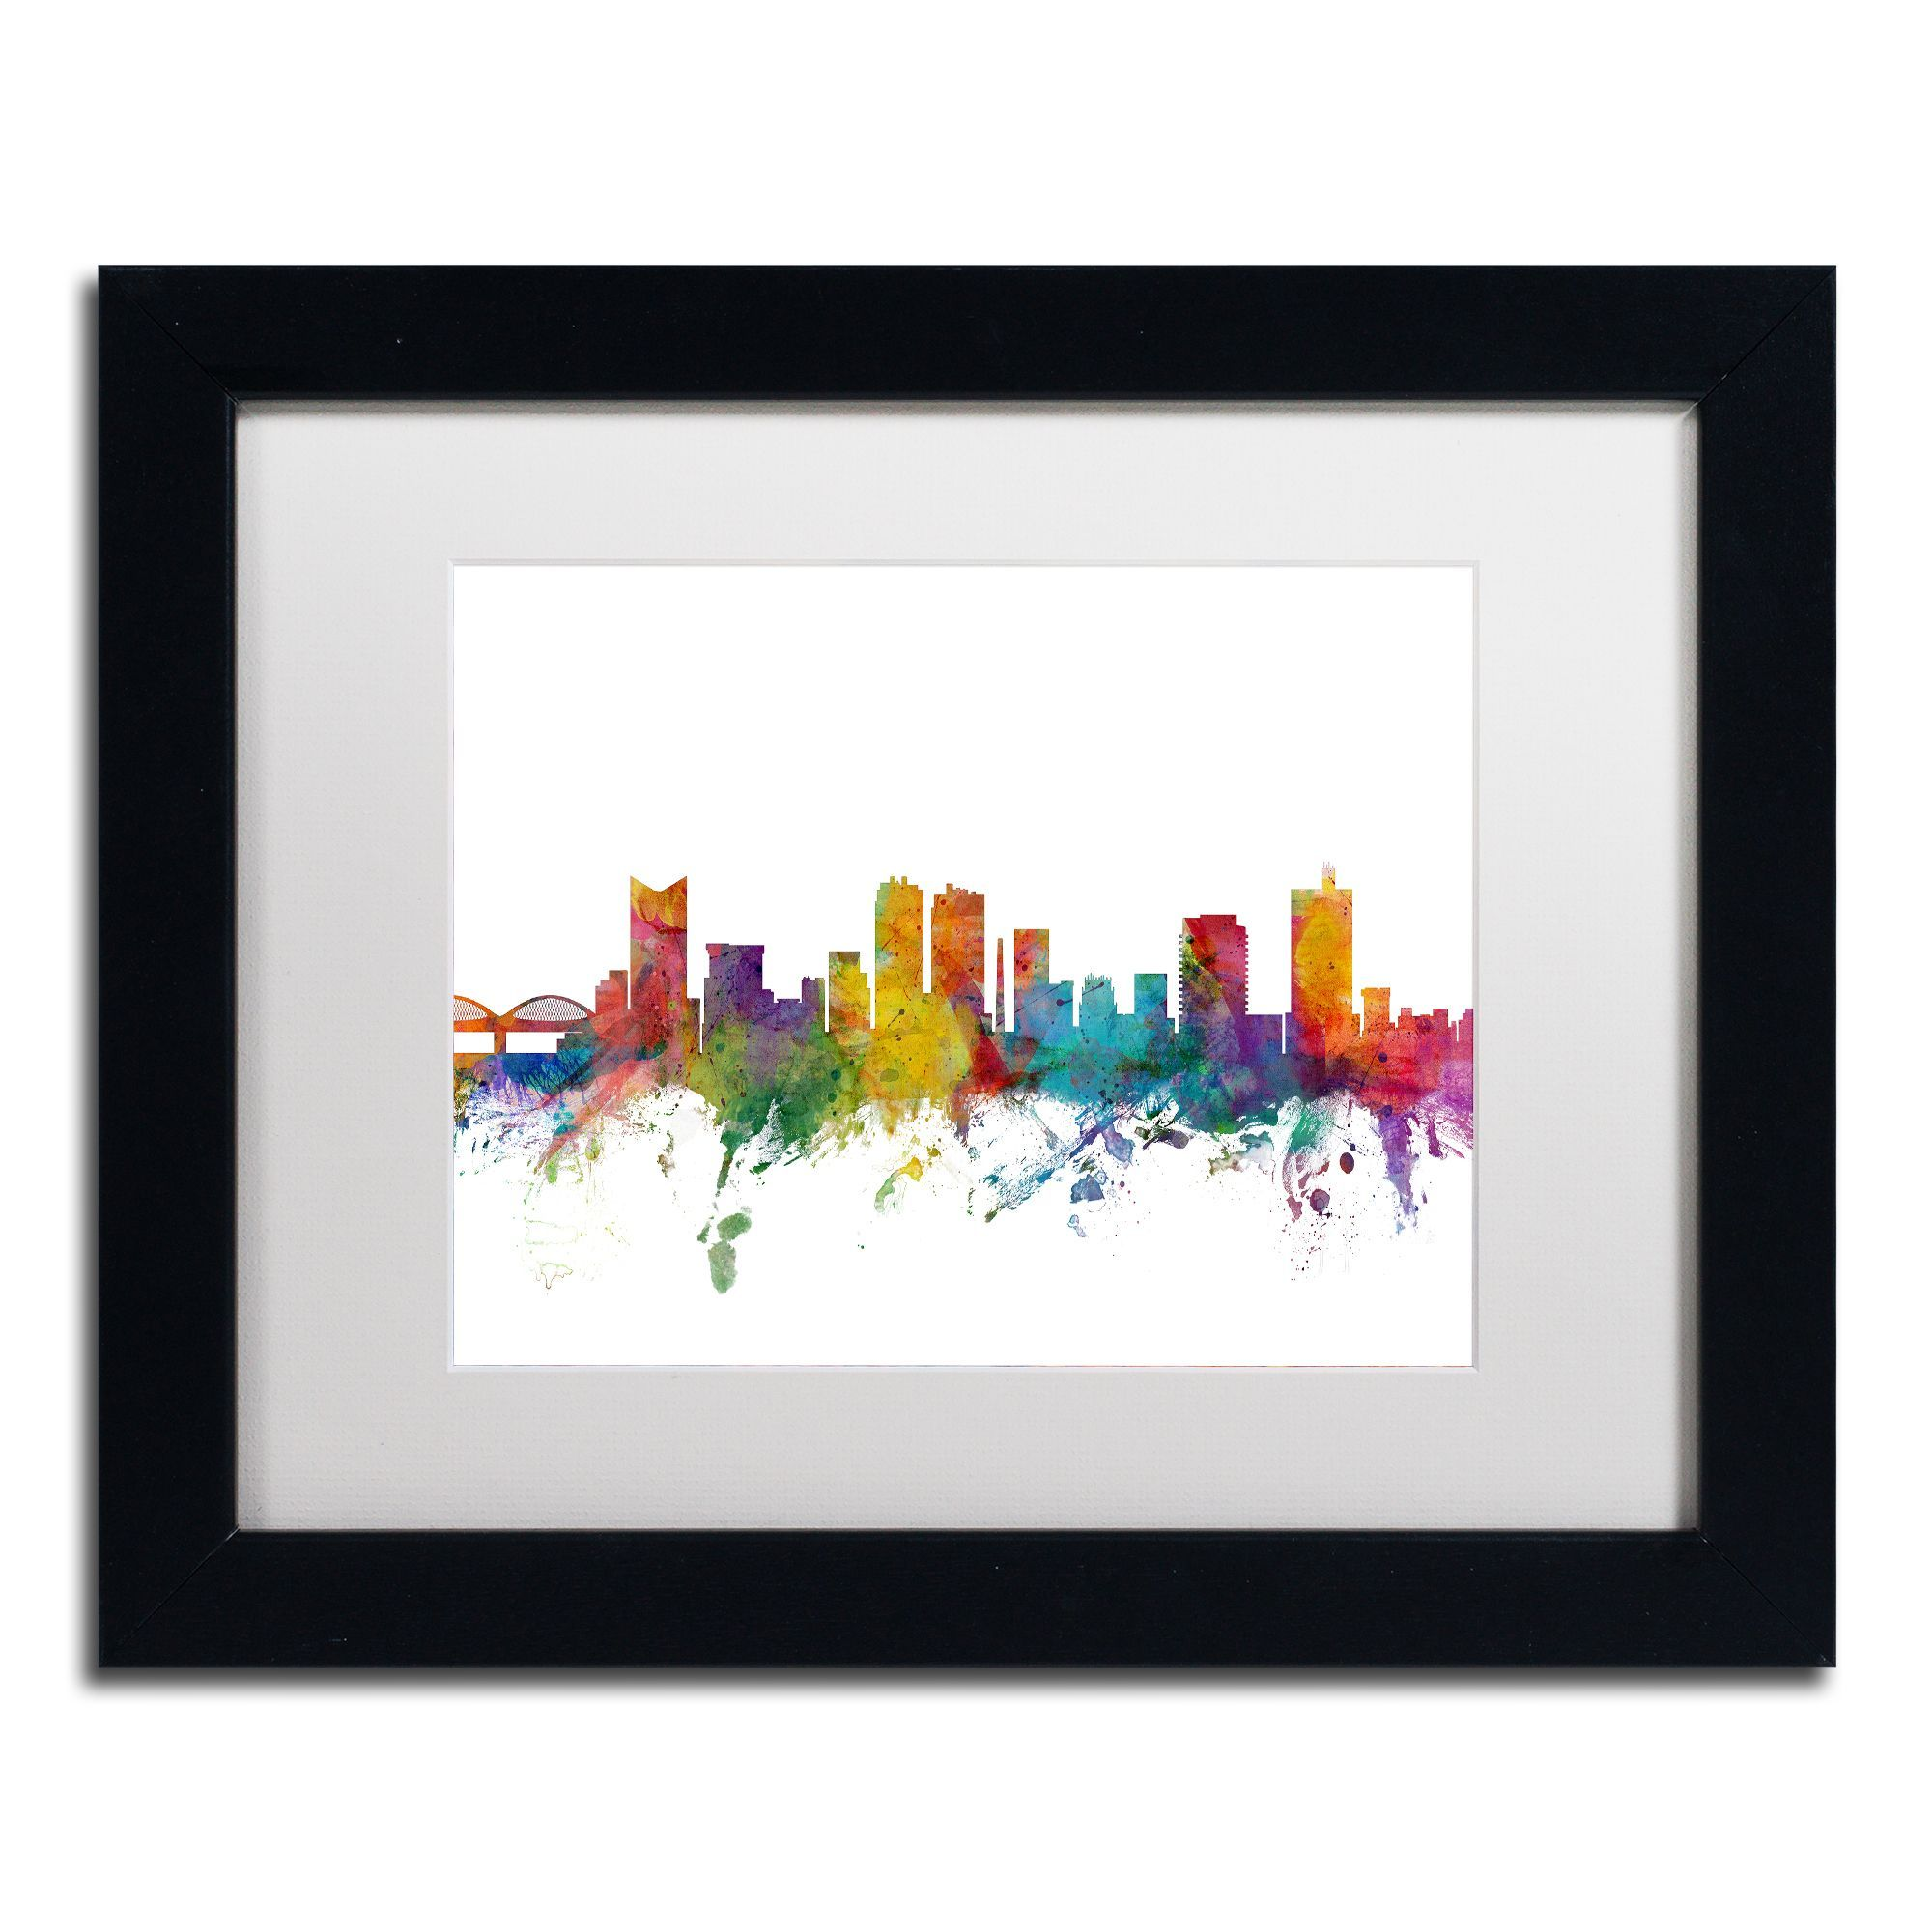 Michael Tompsett 'Fort Worth Texas Skyline' White Matte, Framed Canvas Wall Art